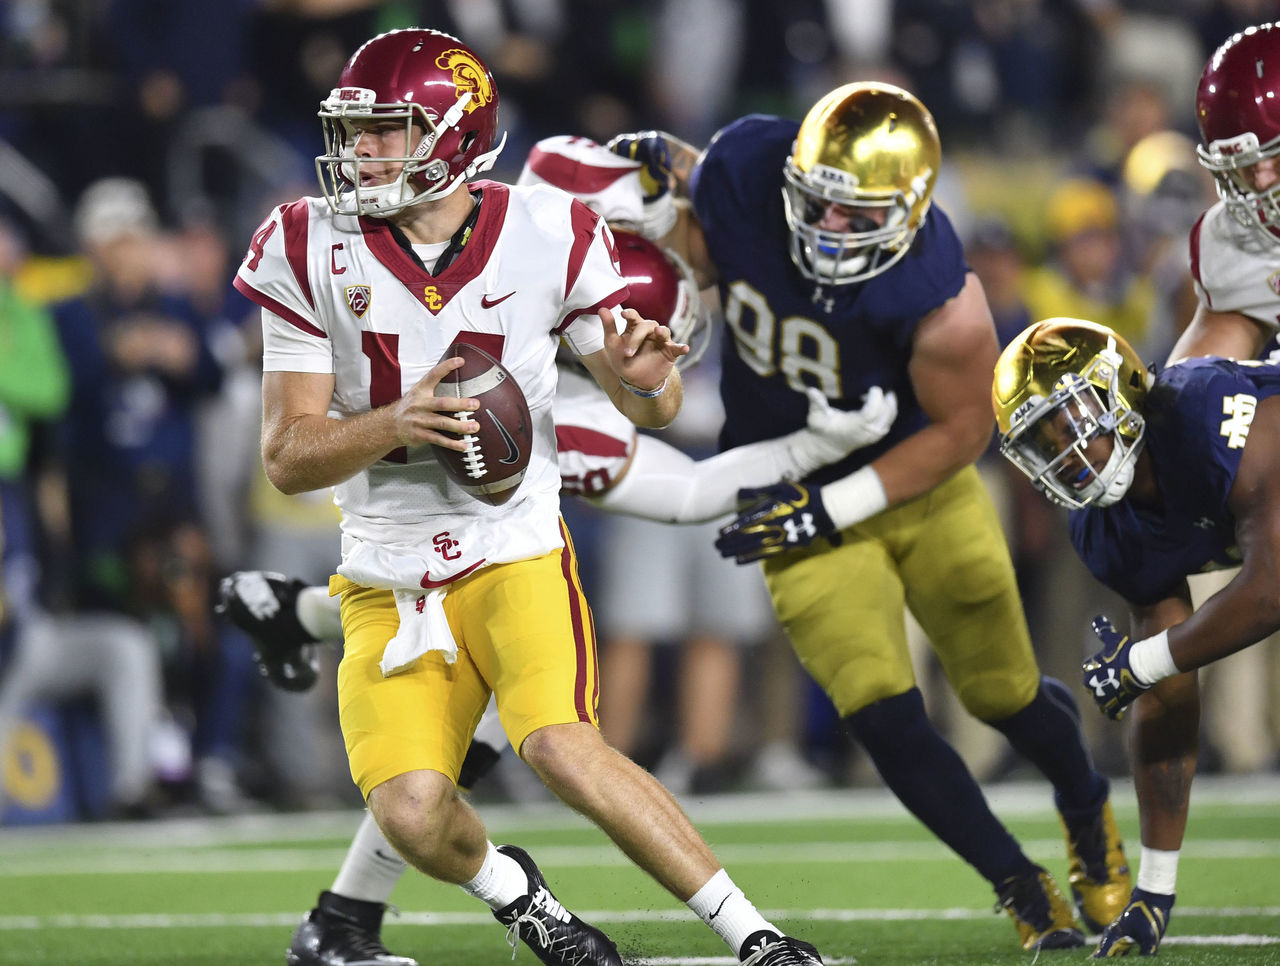 Cropped 2017 10 22t014155z 219305545 nocid rtrmadp 3 ncaa football southern california at notre dame